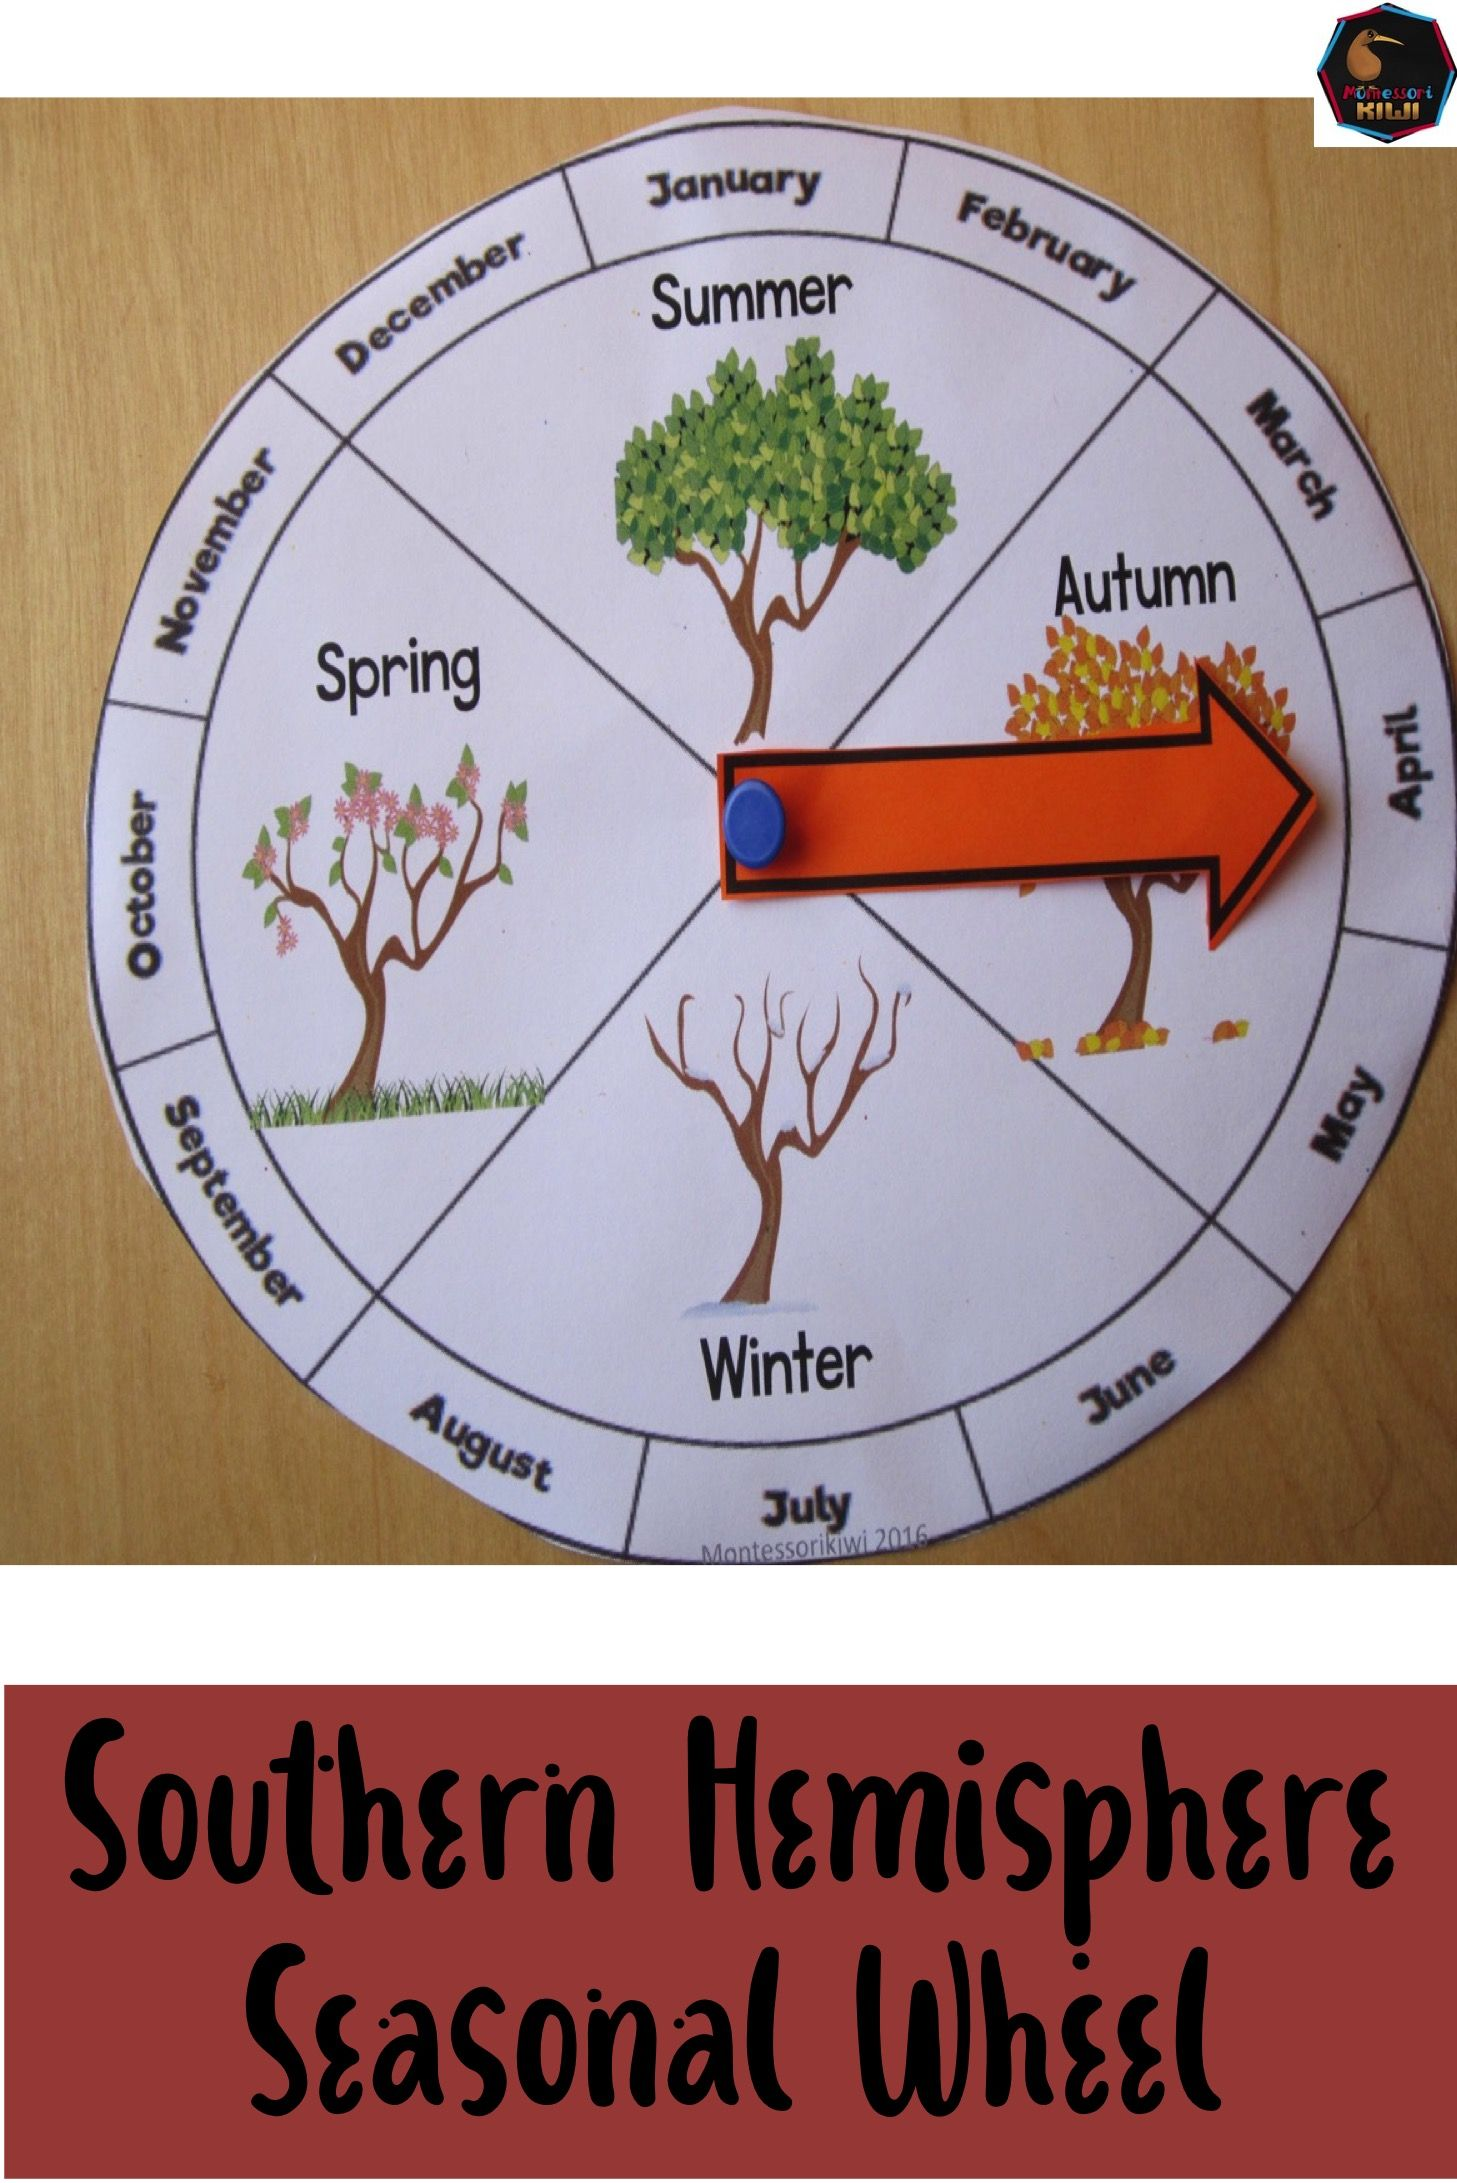 Southern Hemisphere Seasonal Wheel